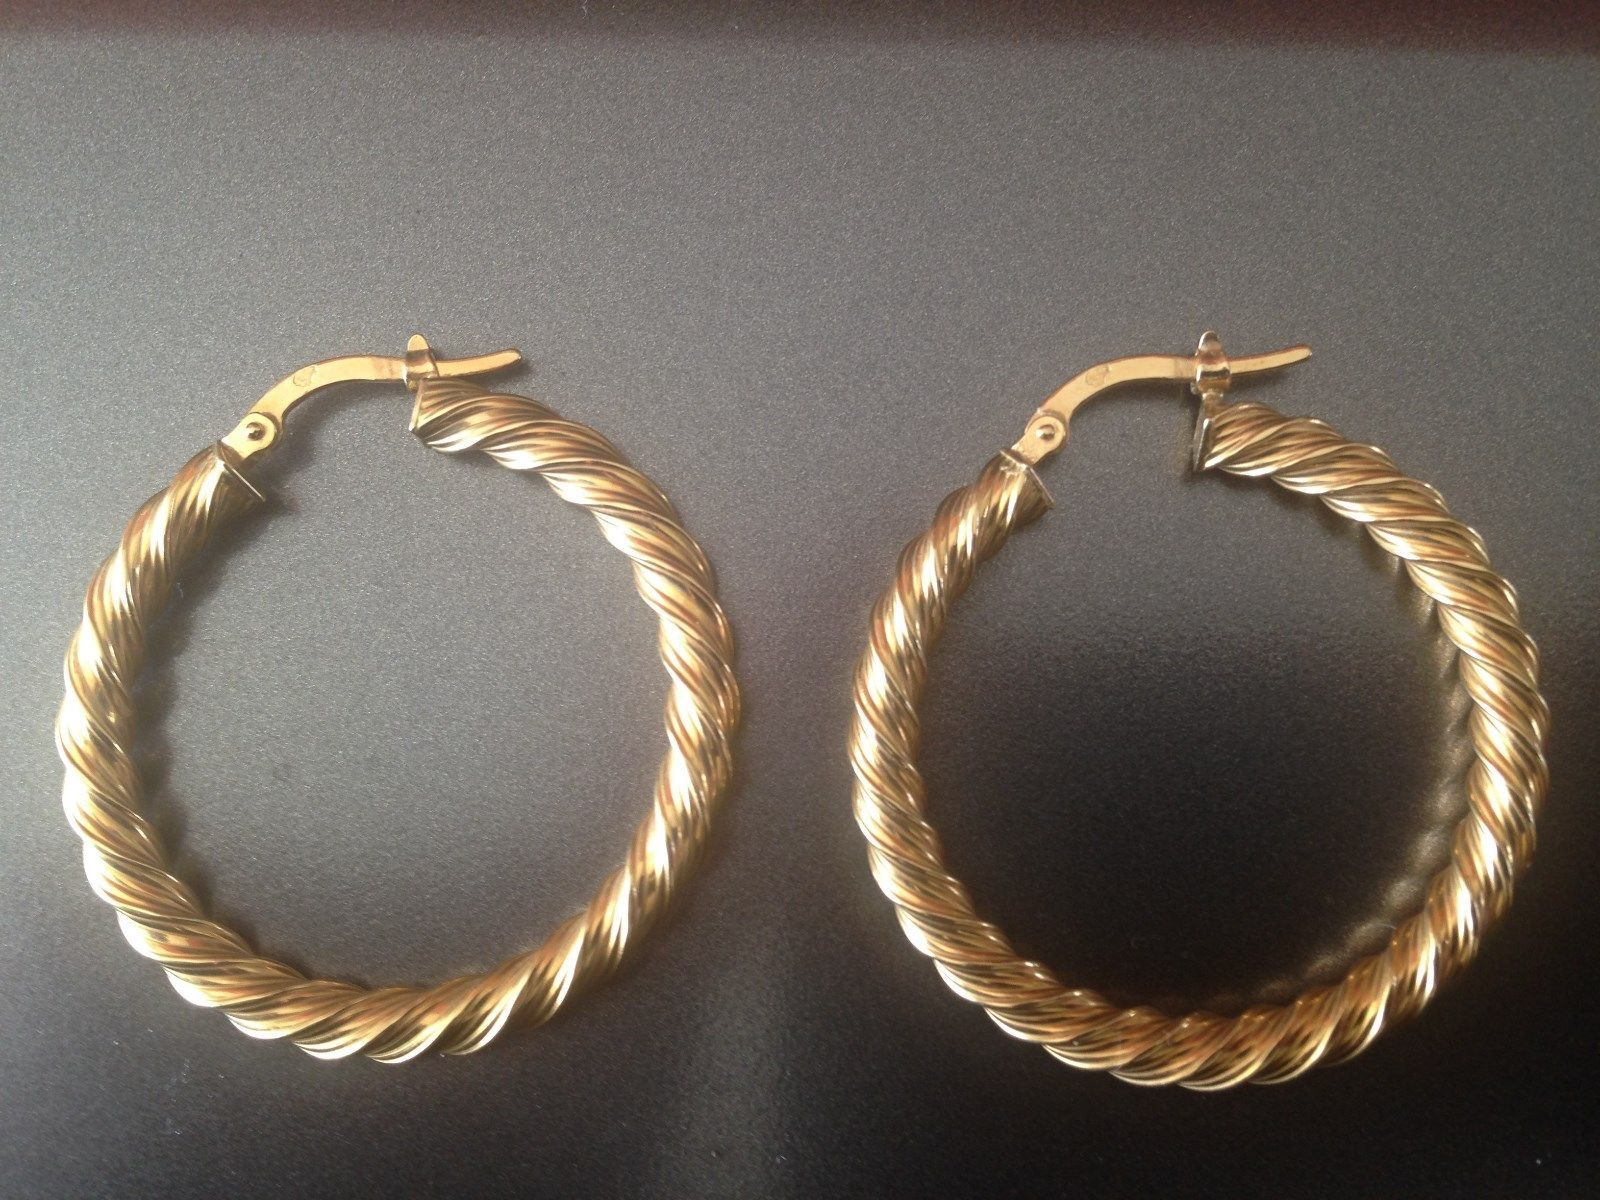 599f254e54b boucles d  oreilles CREOLE TORSADEE or jaune 18 carats - 750 1000 FOR SALE